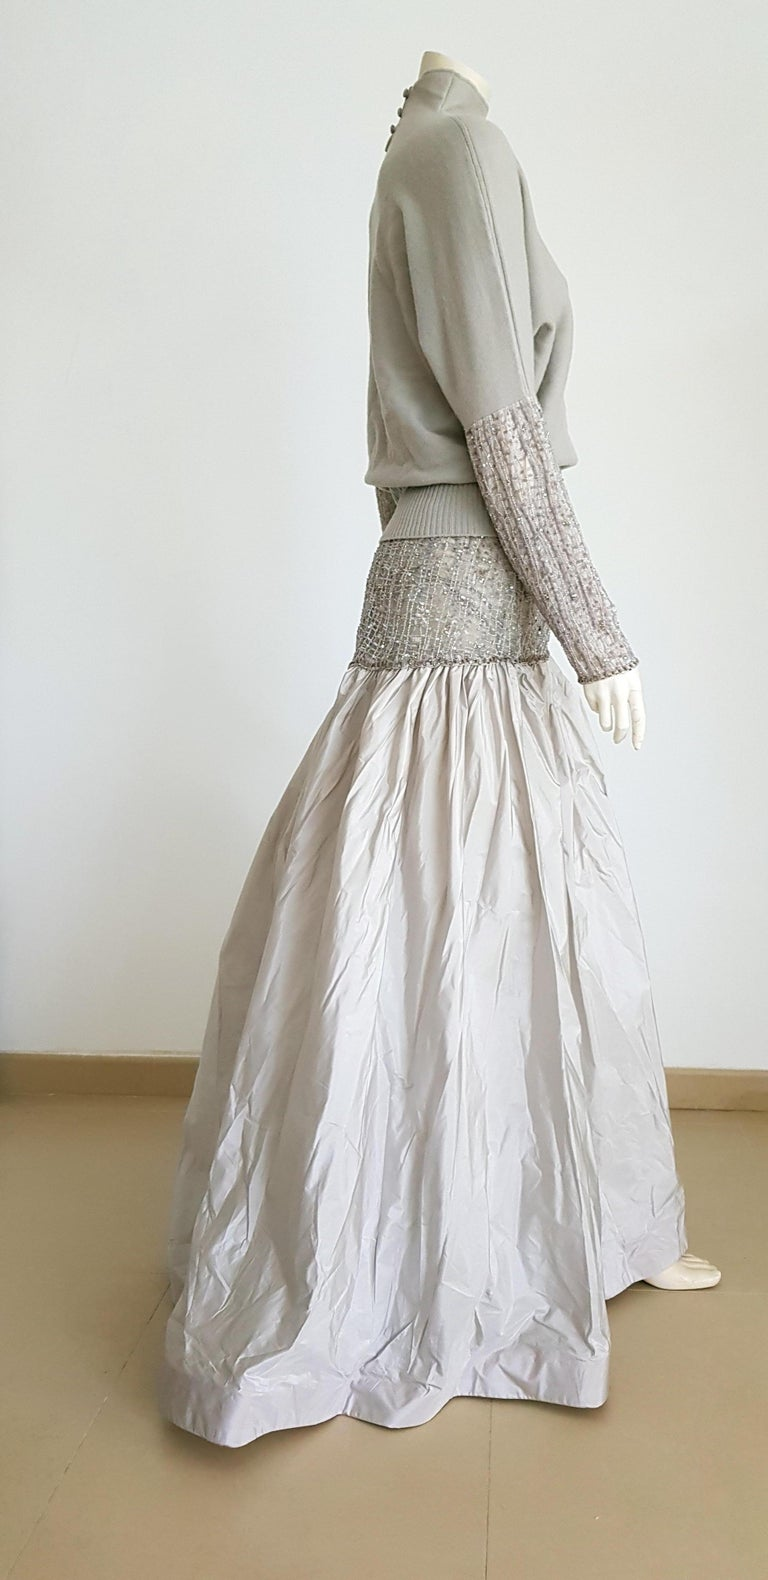 Gray VALENTINO Top Sweater Skirt Swarovsky Embroidery Beads Cashmere Silk Dress - New For Sale